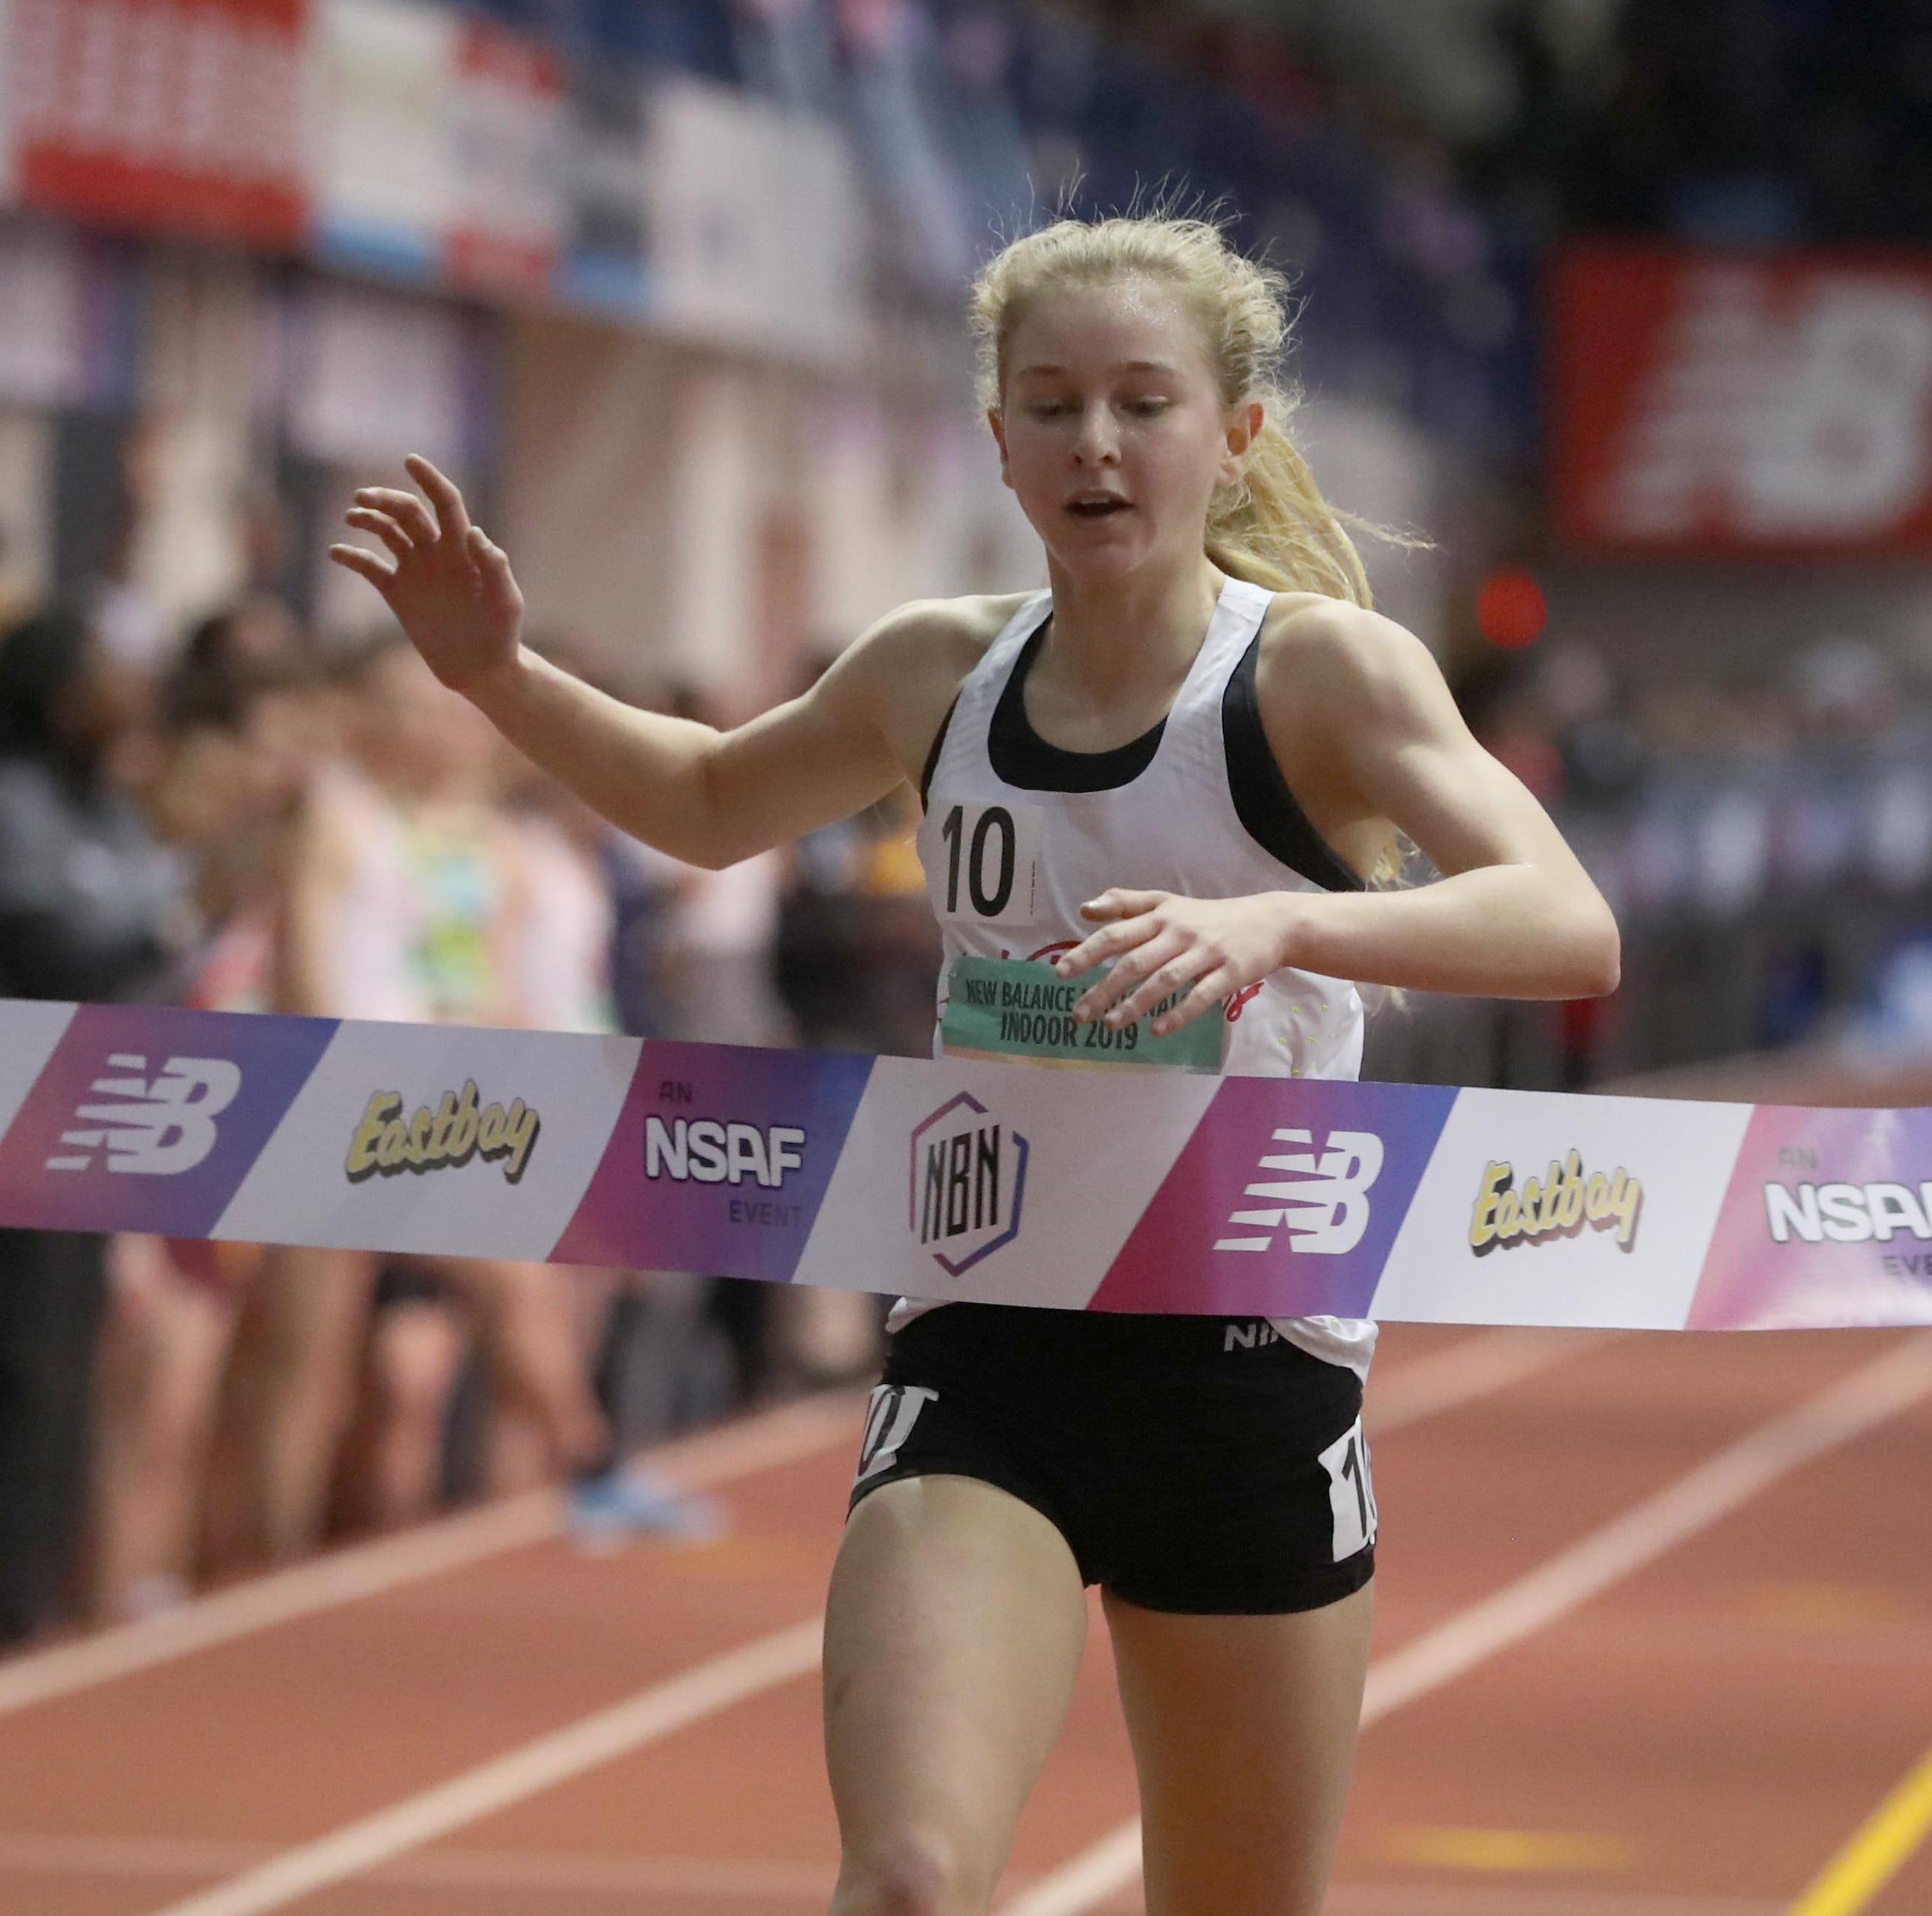 Katelyn Tuohy intends to run for North Rockland as senior and fit in pro races toward Olympic Trials